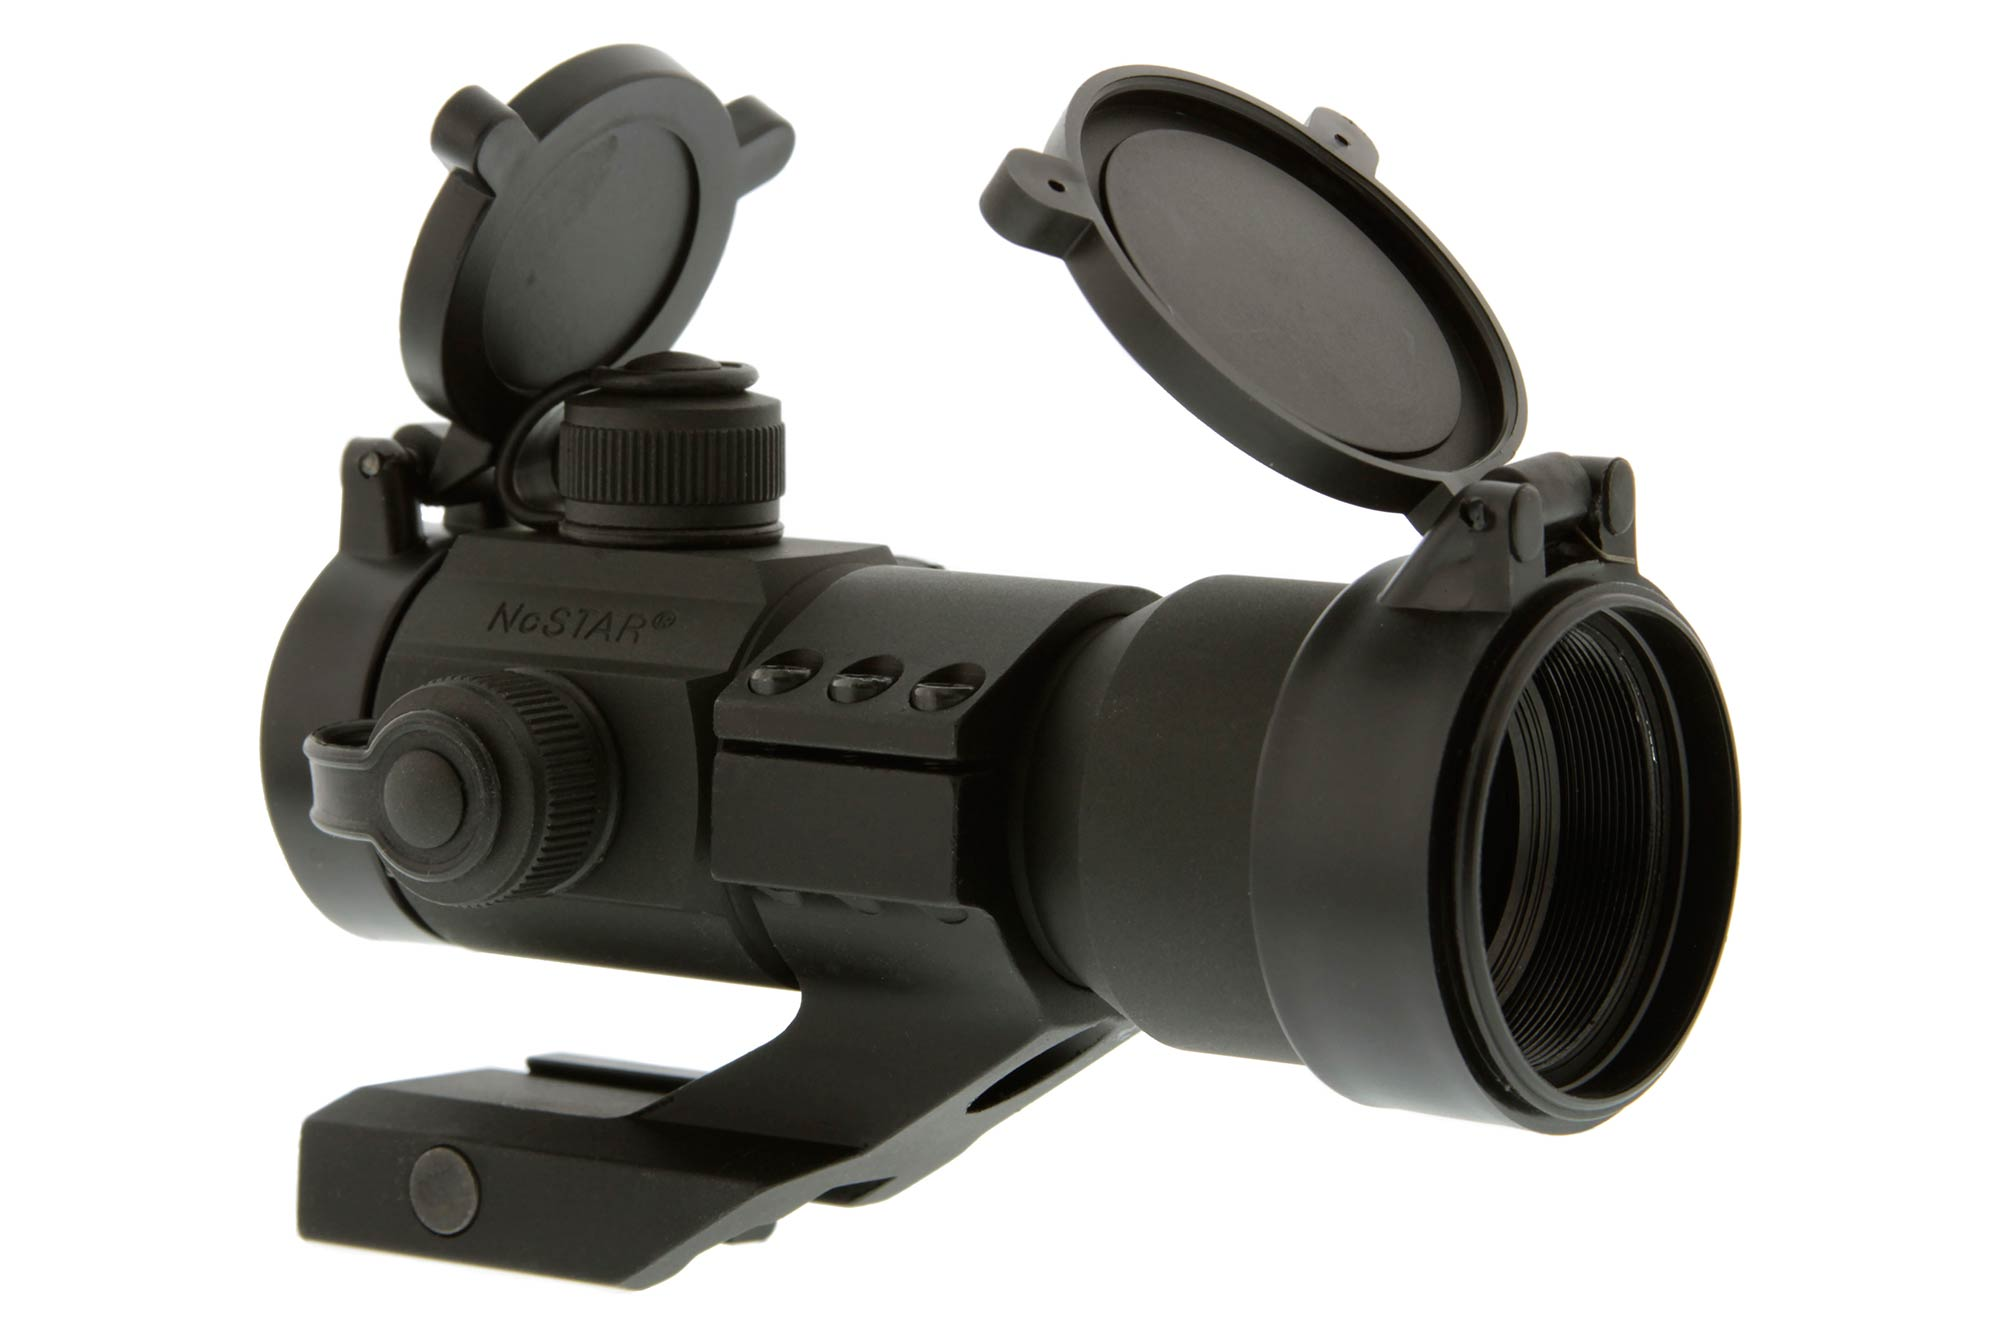 NcSTAR 1x35mm Red Dot Optic with Cantilever Mount - Red-Green-Blue Reticle